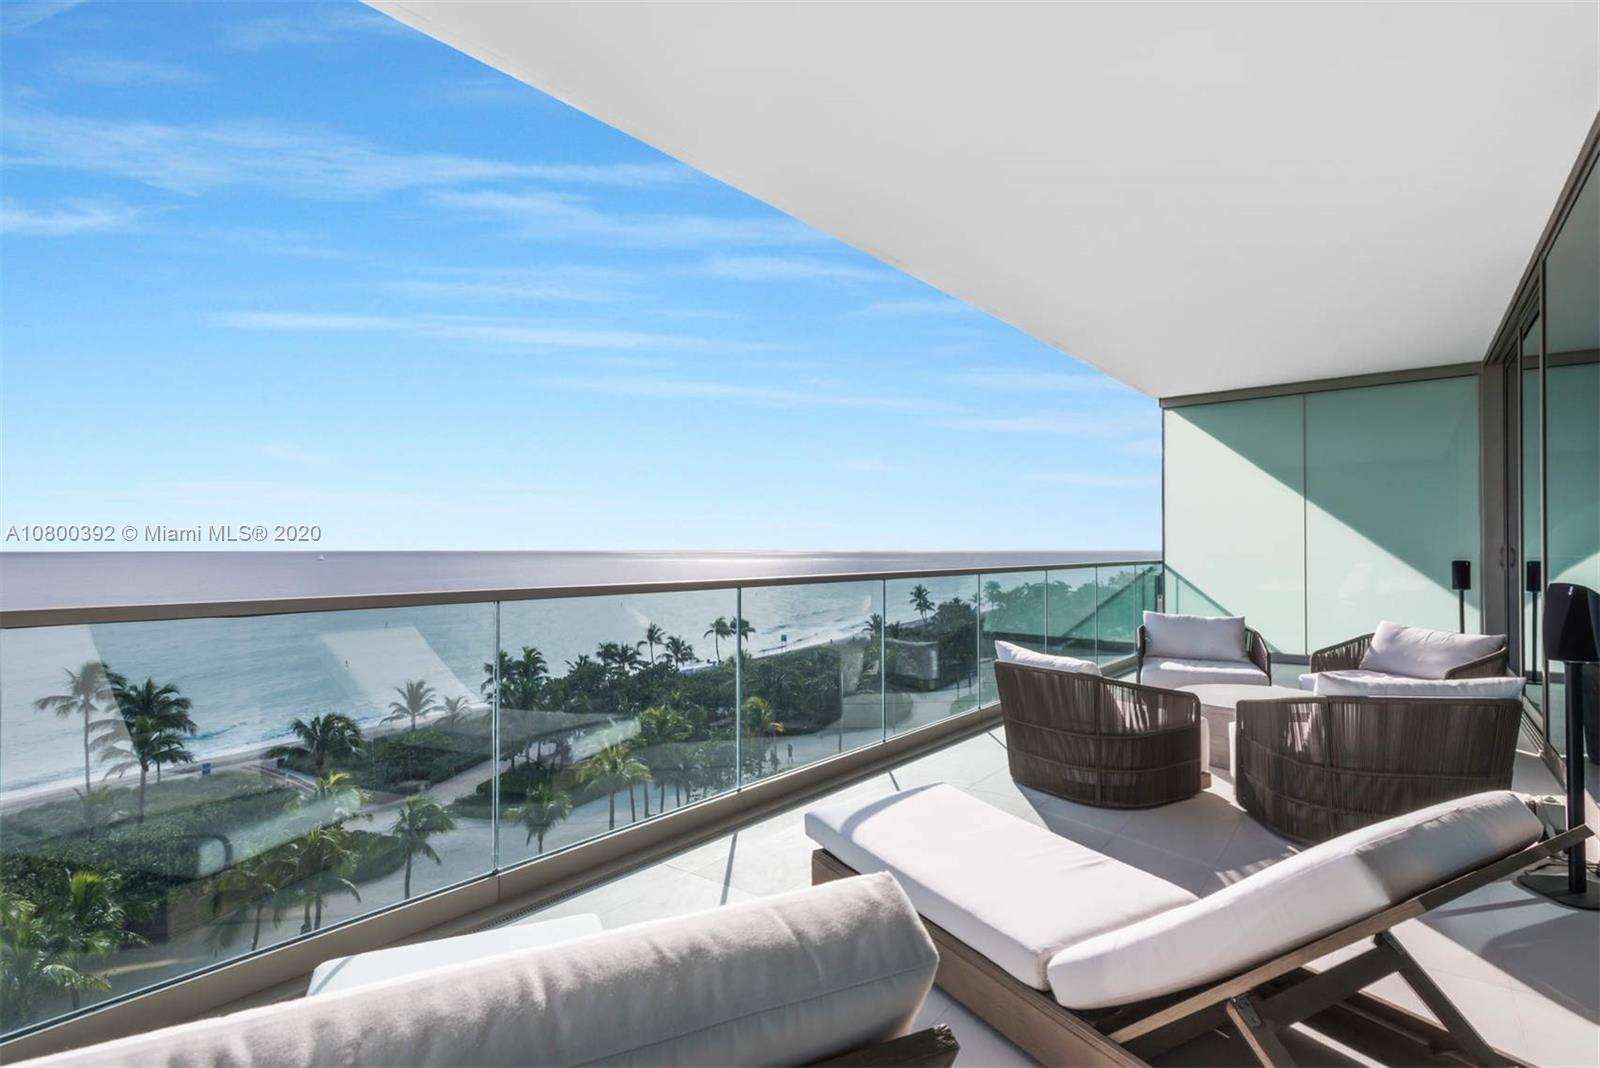 Spectacular Ocean Front unit with endless ocean views. Come see this ultra high-end unit in the newest building in Bal Harbour. Oceana has everything to offer! Full amenities from spa, two pools, two tennis courts, on site high end restaurant, top of the line fitness center and exclusive cabanas. This 1 bedroom with converted Den to a second bedroom, 2 full Italian Marble lined bathrooms with soak-in tub in the master. Full chefs kitchen and a huge balcony for relaxing in front of the ocean. This unit is offered fully furnished and turnkey.